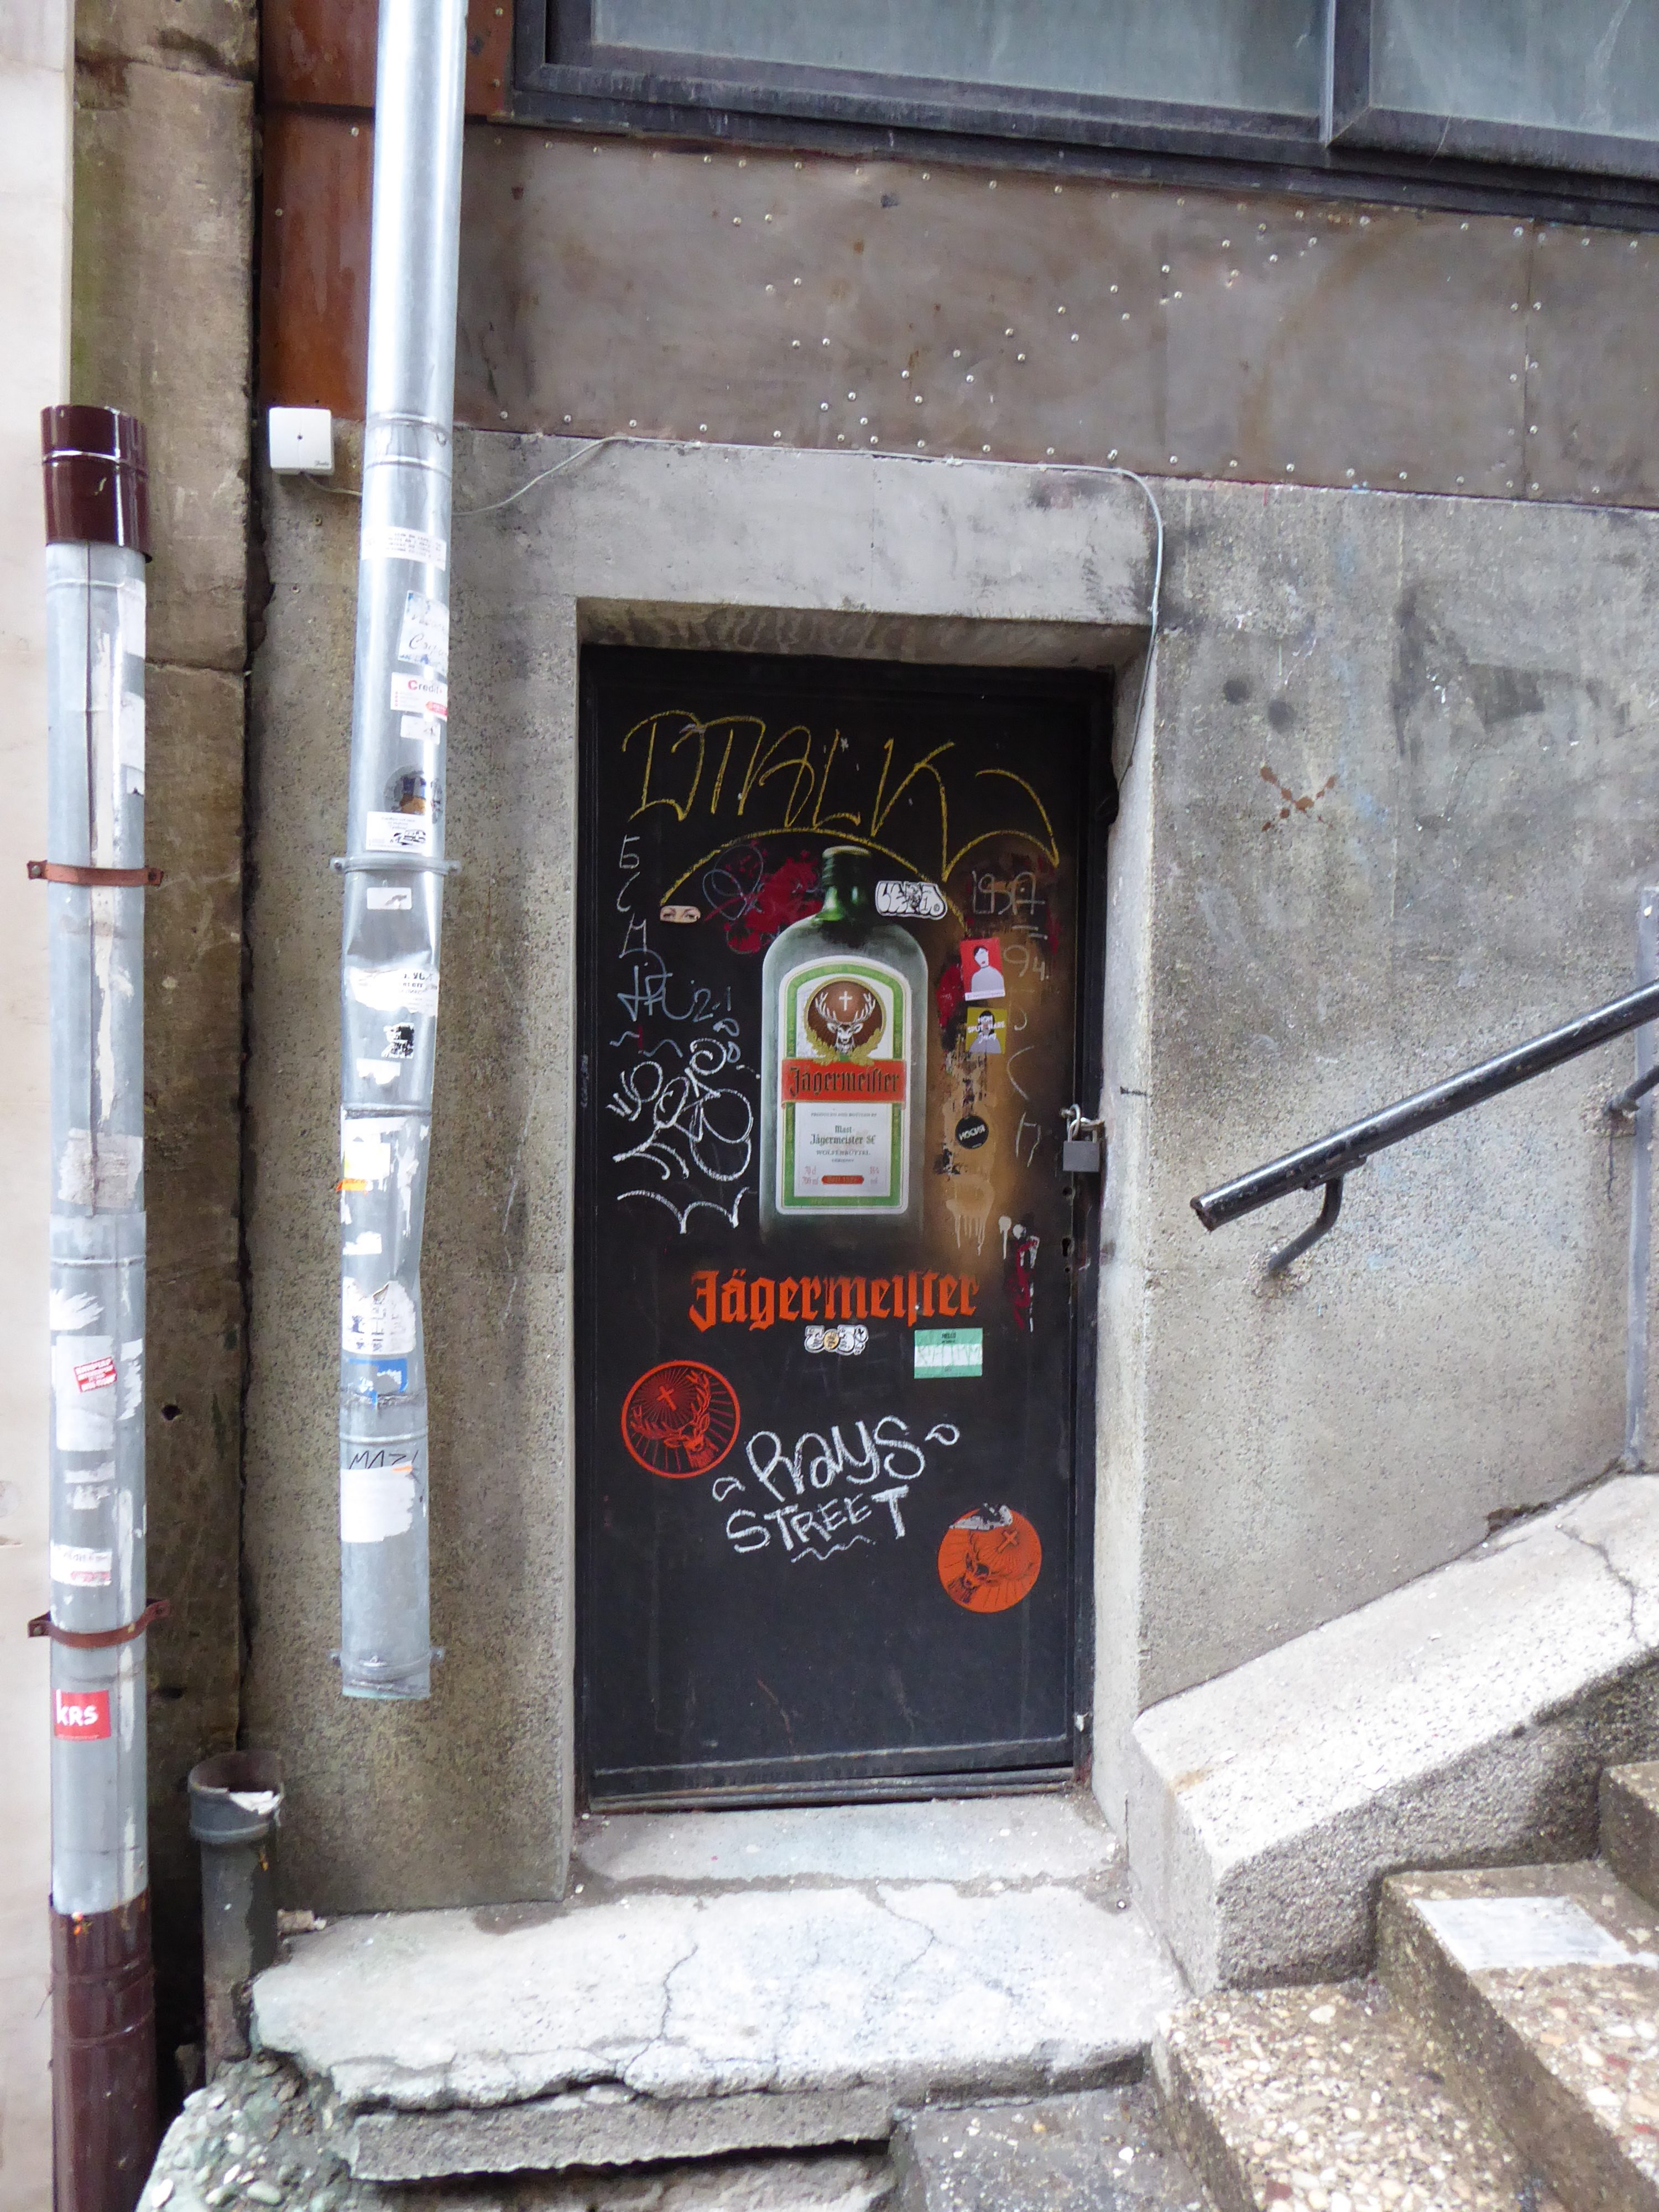 Picture of the door that was tld entrance to a Communist secret police building in Sofia